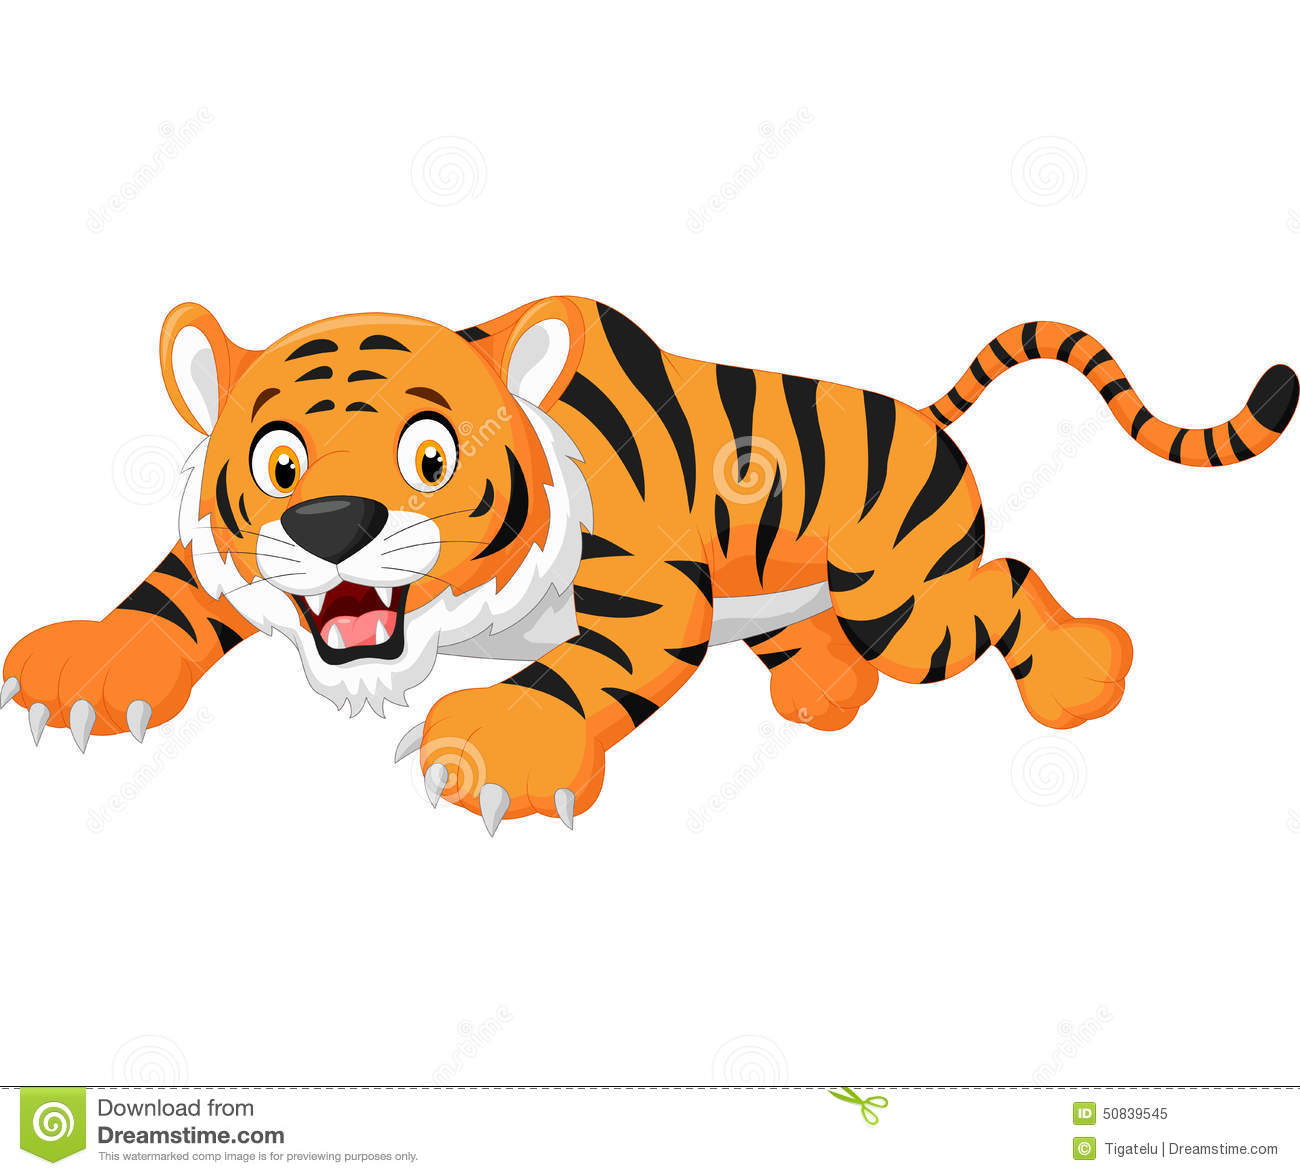 Cartoon Tiger Jumping Stock Vector - Image: 50839545